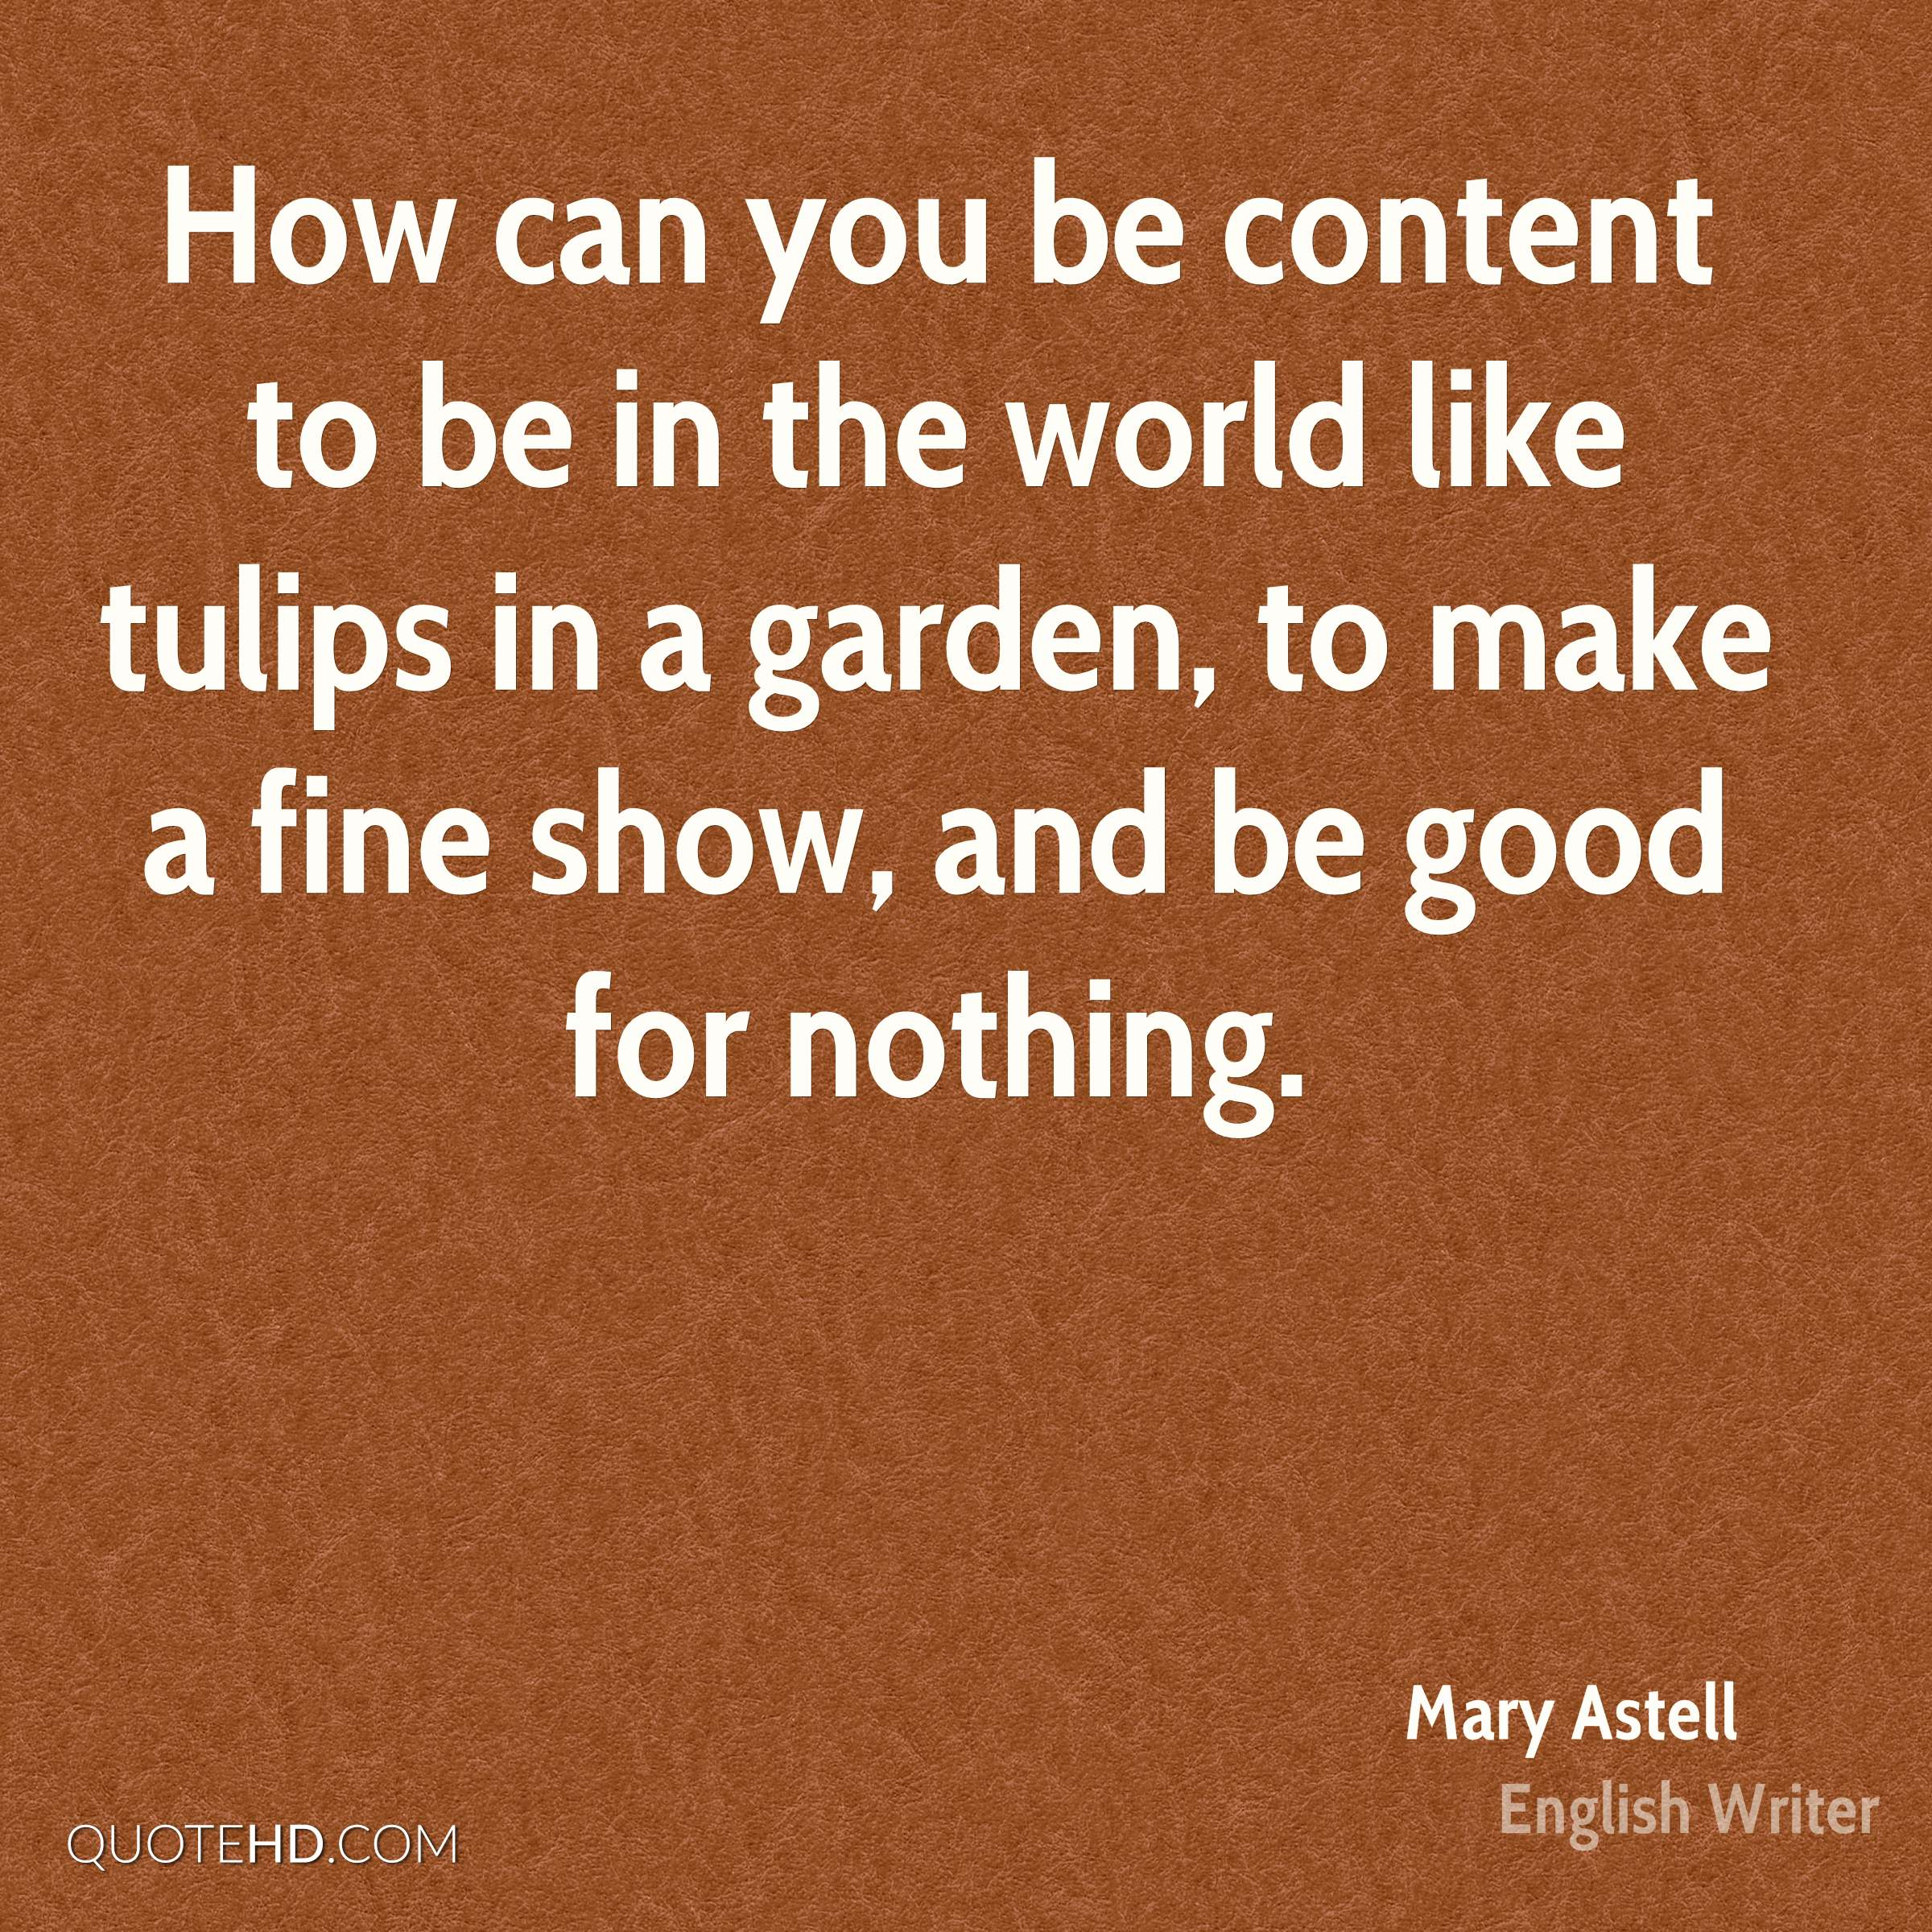 How can you be content to be in the world like tulips in a garden, to make a fine show, and be good for nothing.